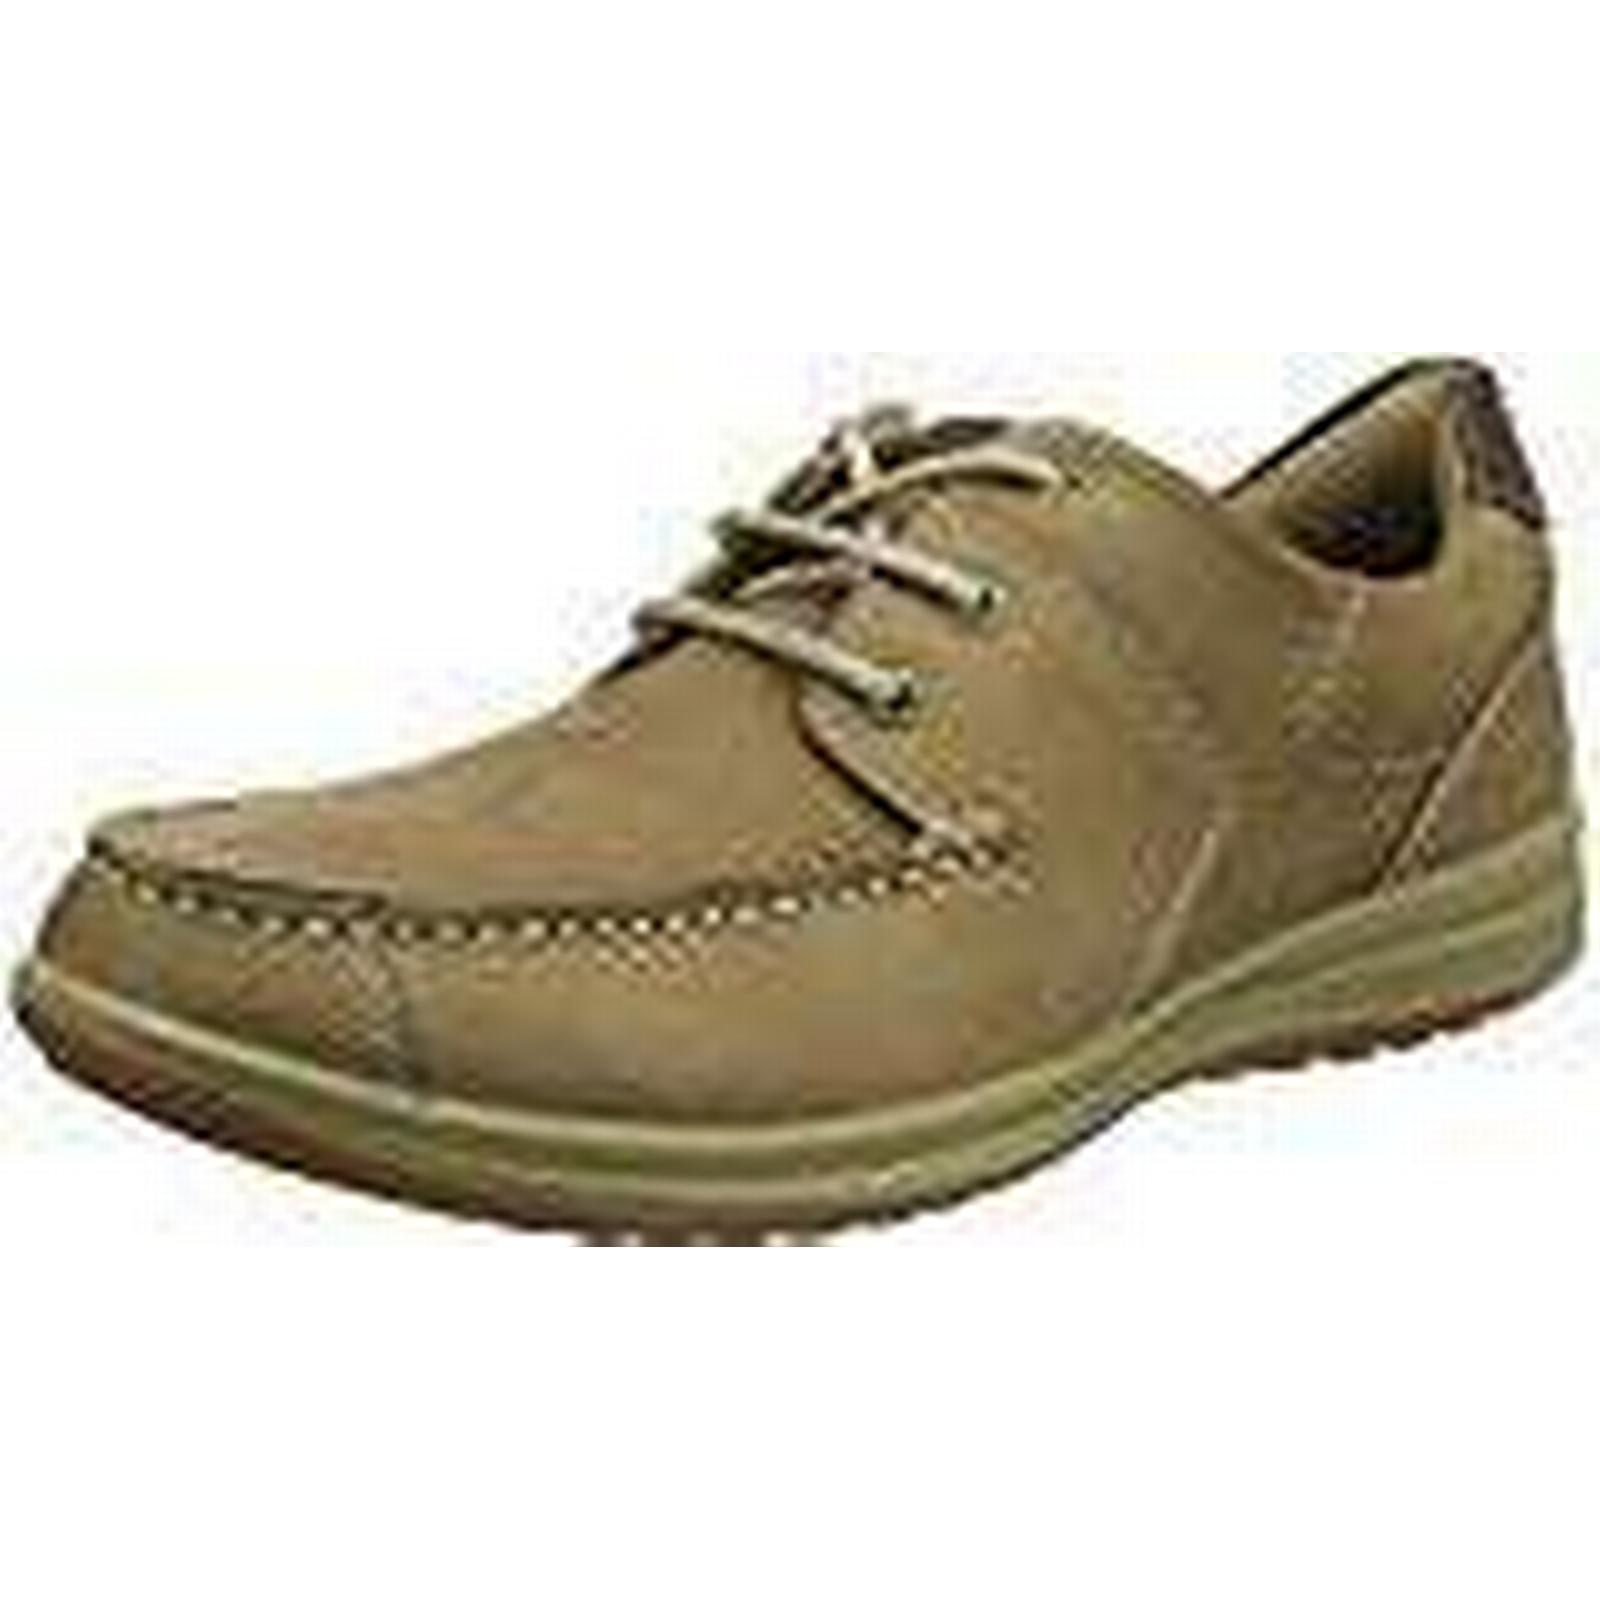 Hush Puppies 12 Men's Runner Moccasins, Brown (Taupe), 12 Puppies UK 47 EU acce9c